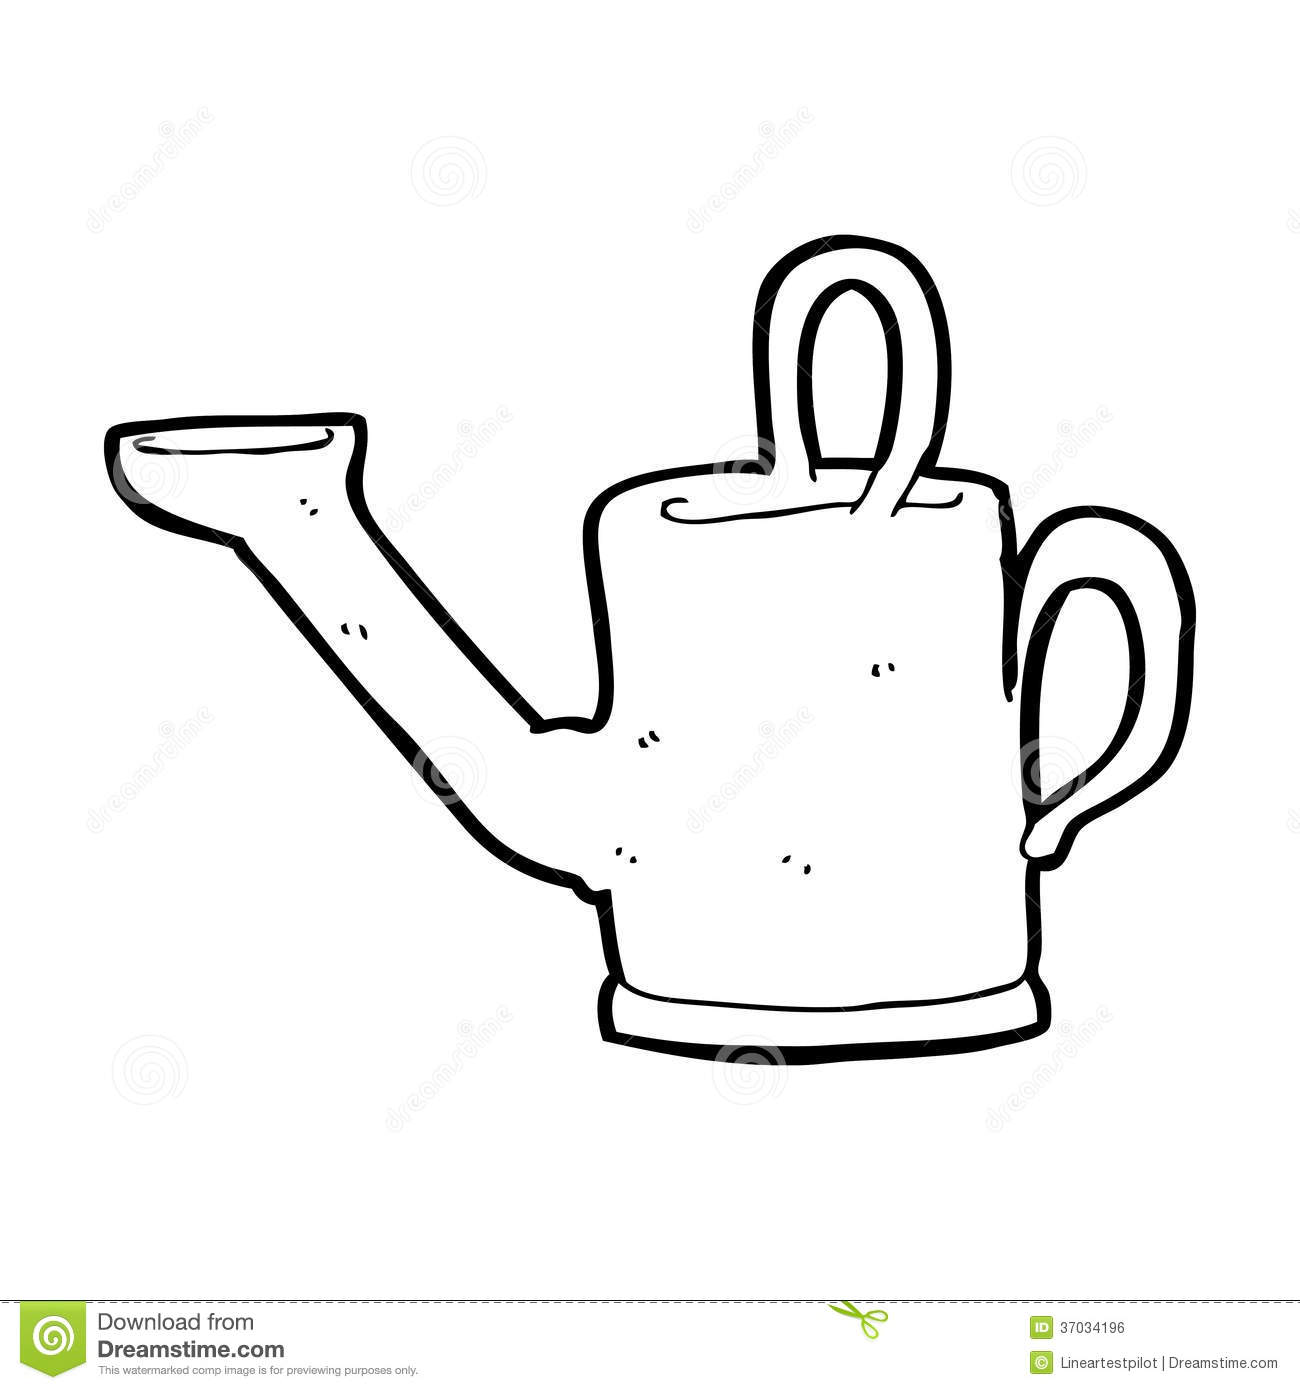 Watering Can Cartoon Royalty Free Stock Image